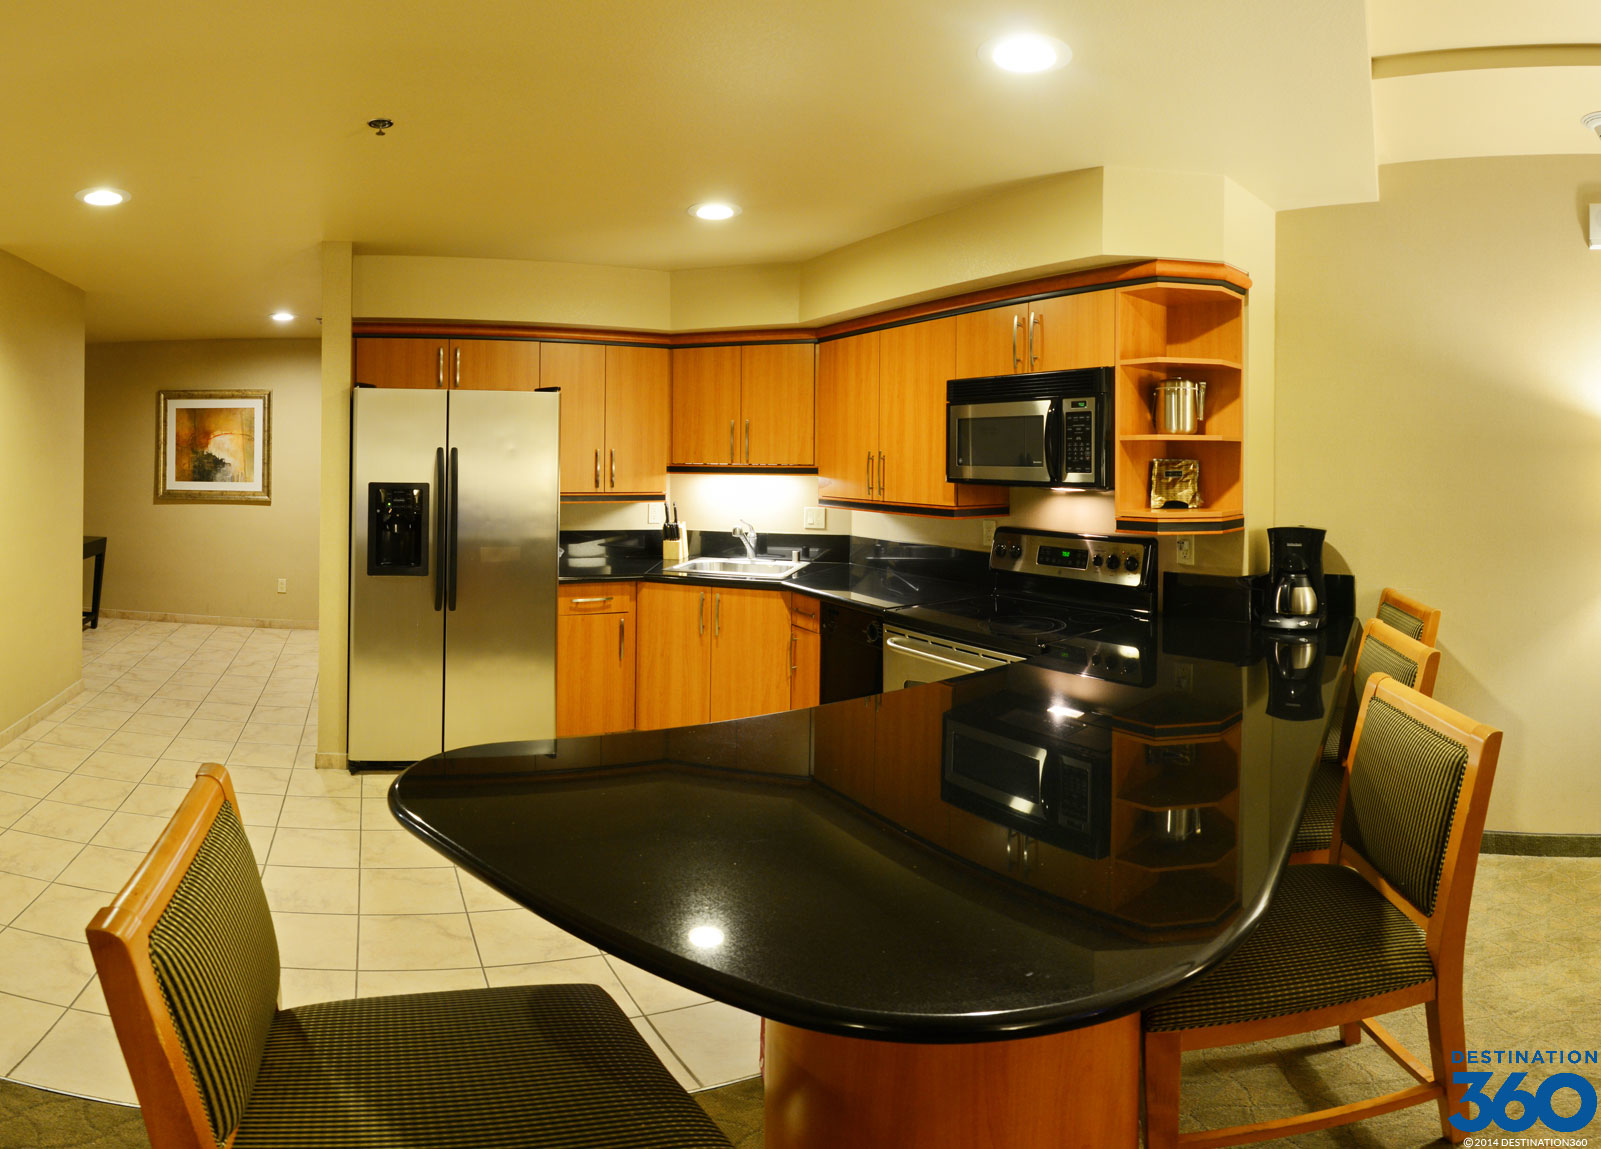 Las Vegas Hotels With 2 Bedroom Suites 2 Bedroom Suites Las Vegas 2 Room Suites Las Vegas